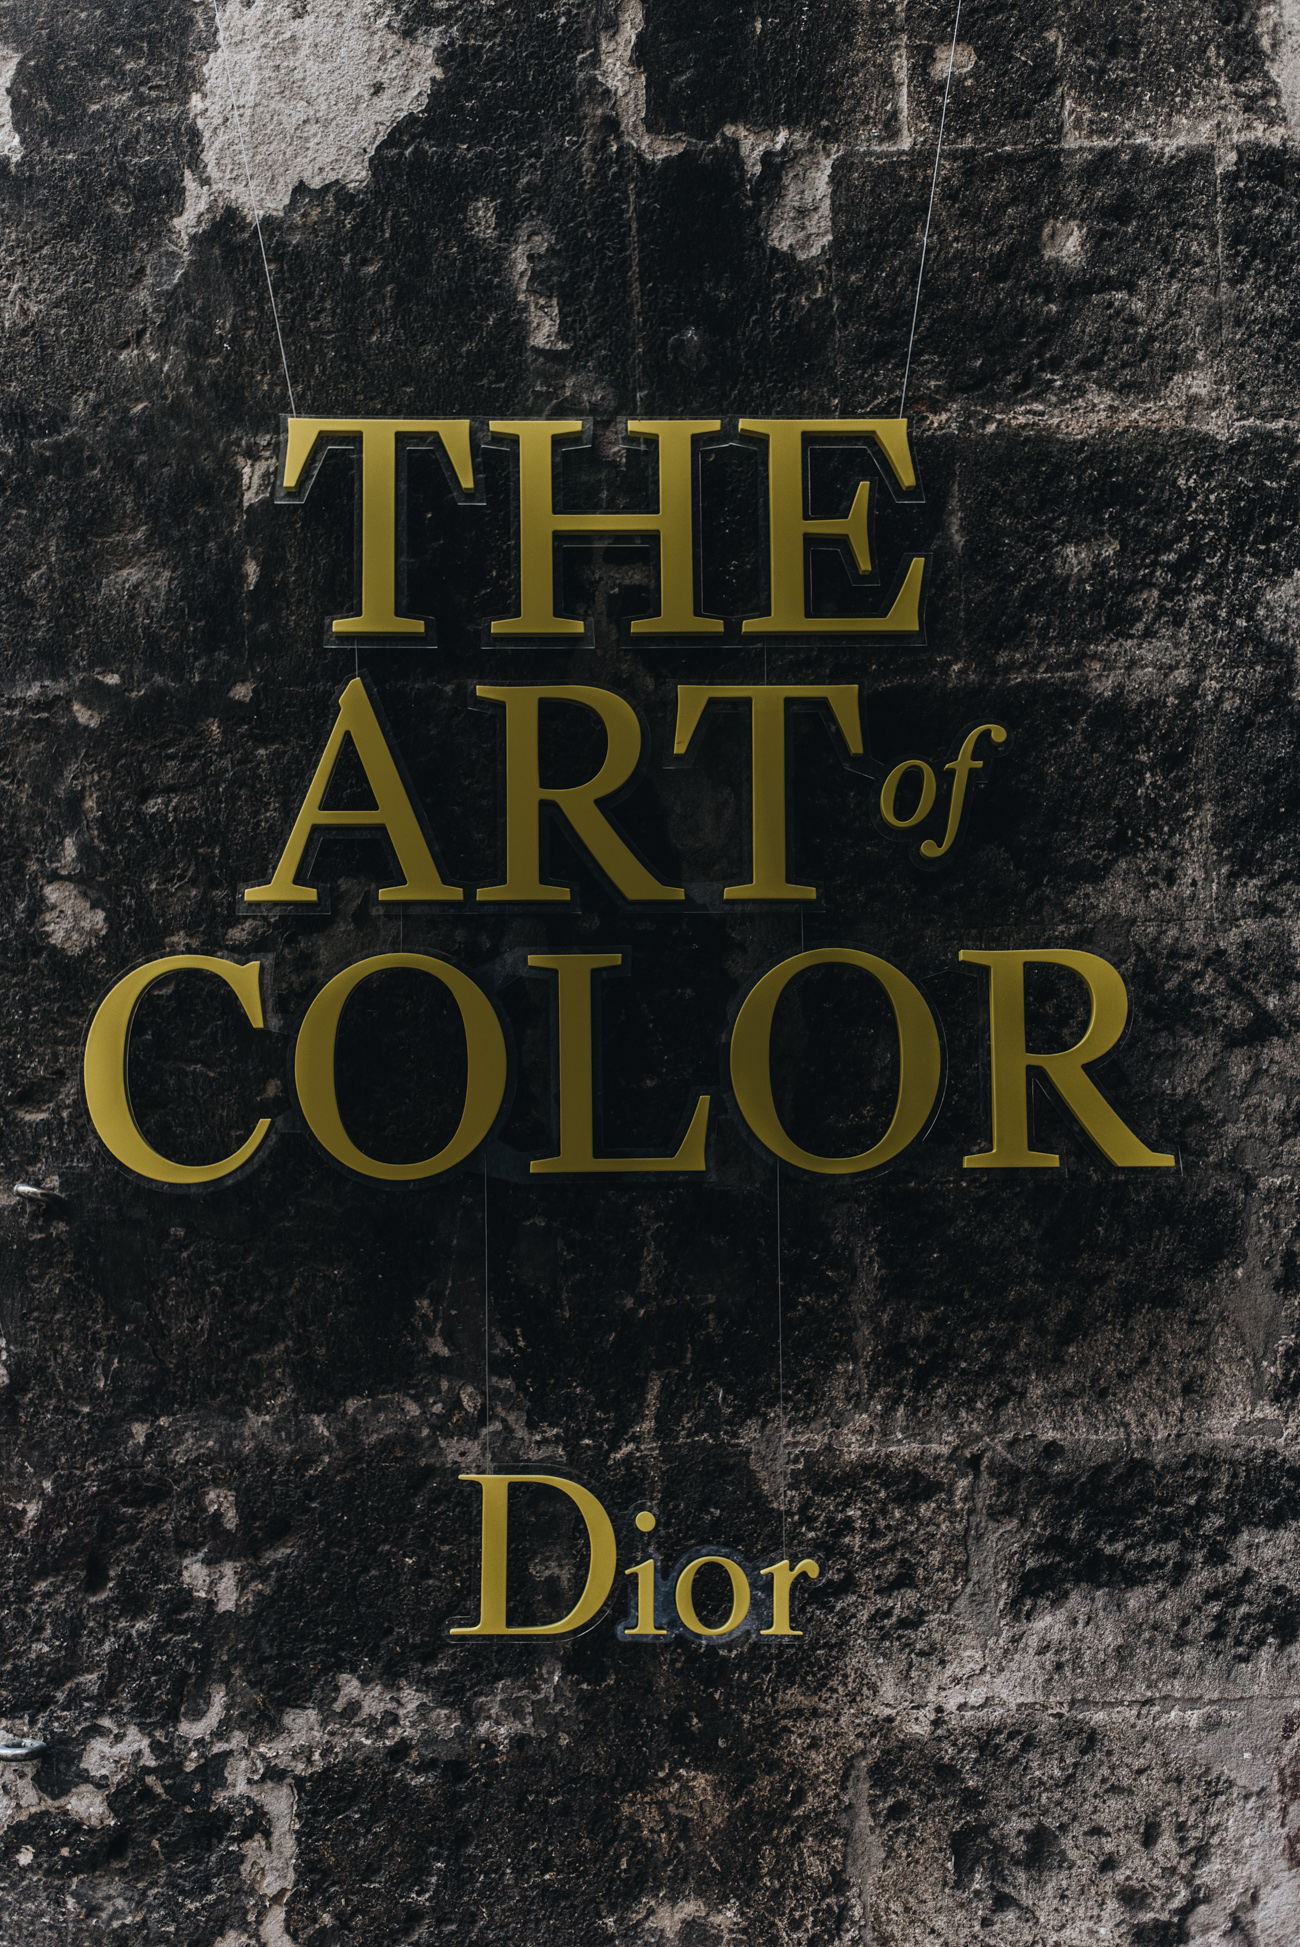 dior-the-color-of-art-exhibition-kunst-ausstellung-frankreich-arles-nina-schwichtenberg-fashiioncarpet